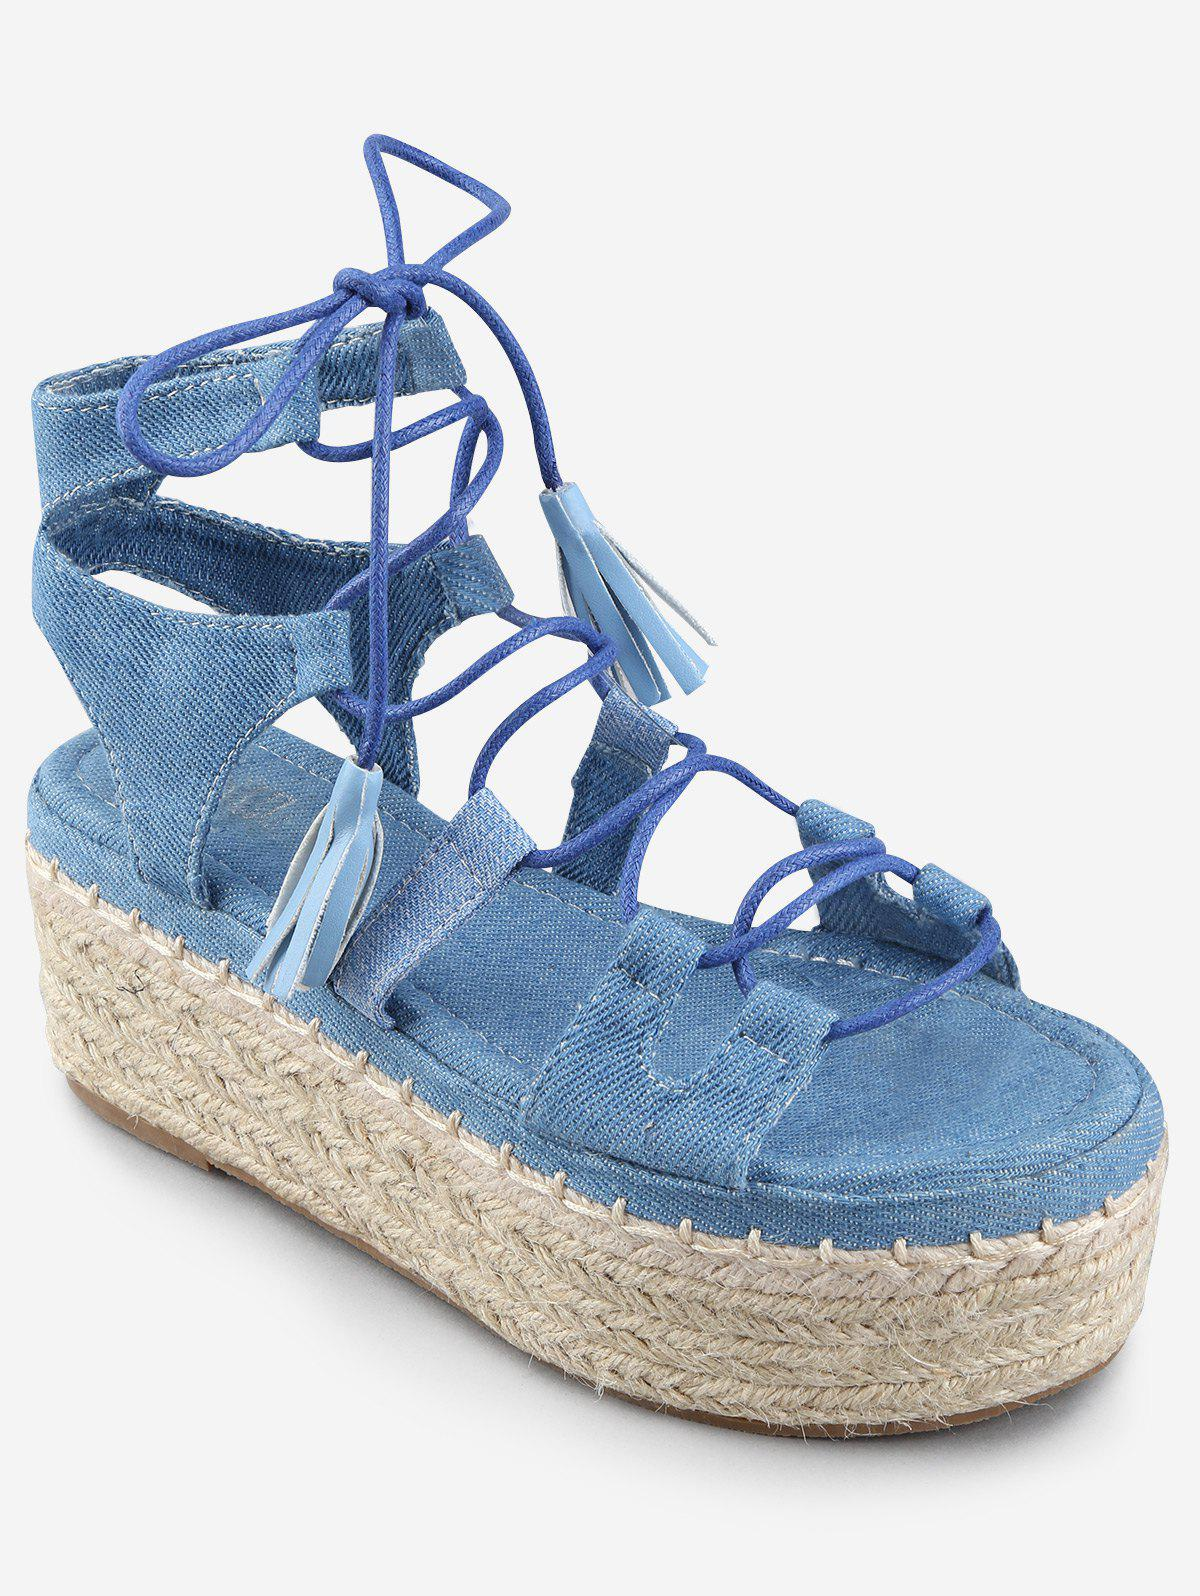 Platform Crisscross Leisure Lace Up Sandals - DENIM BLUE 36